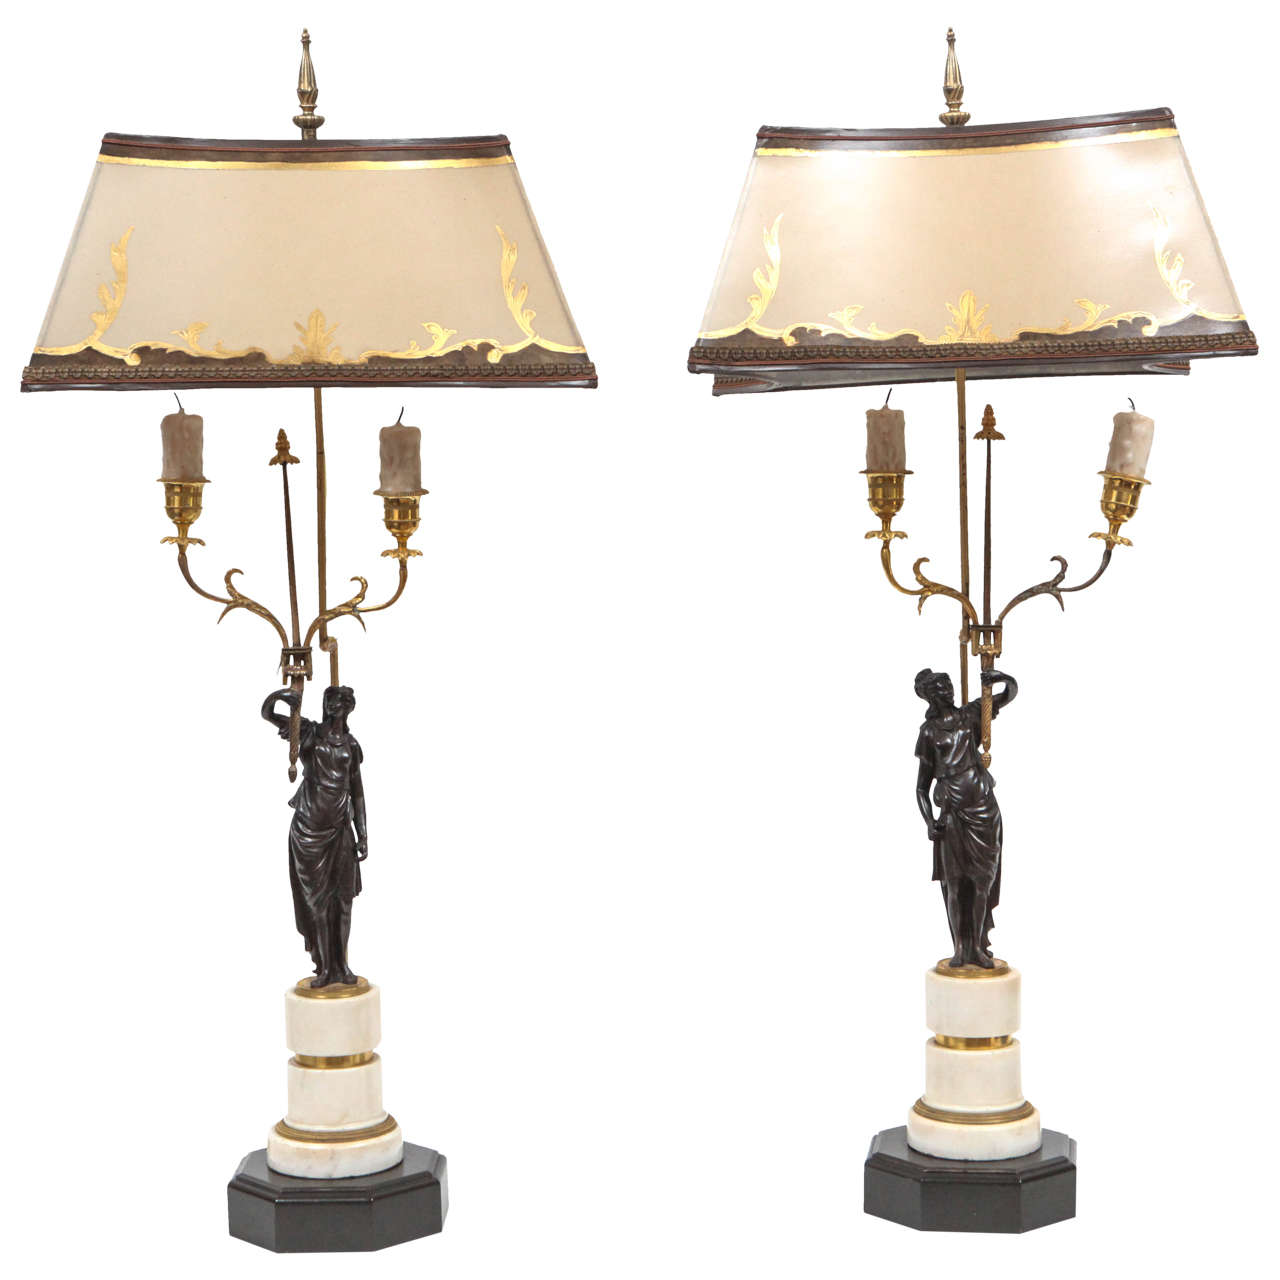 Pair of 19th Century French Marble and Bronze Candlestick Lamps